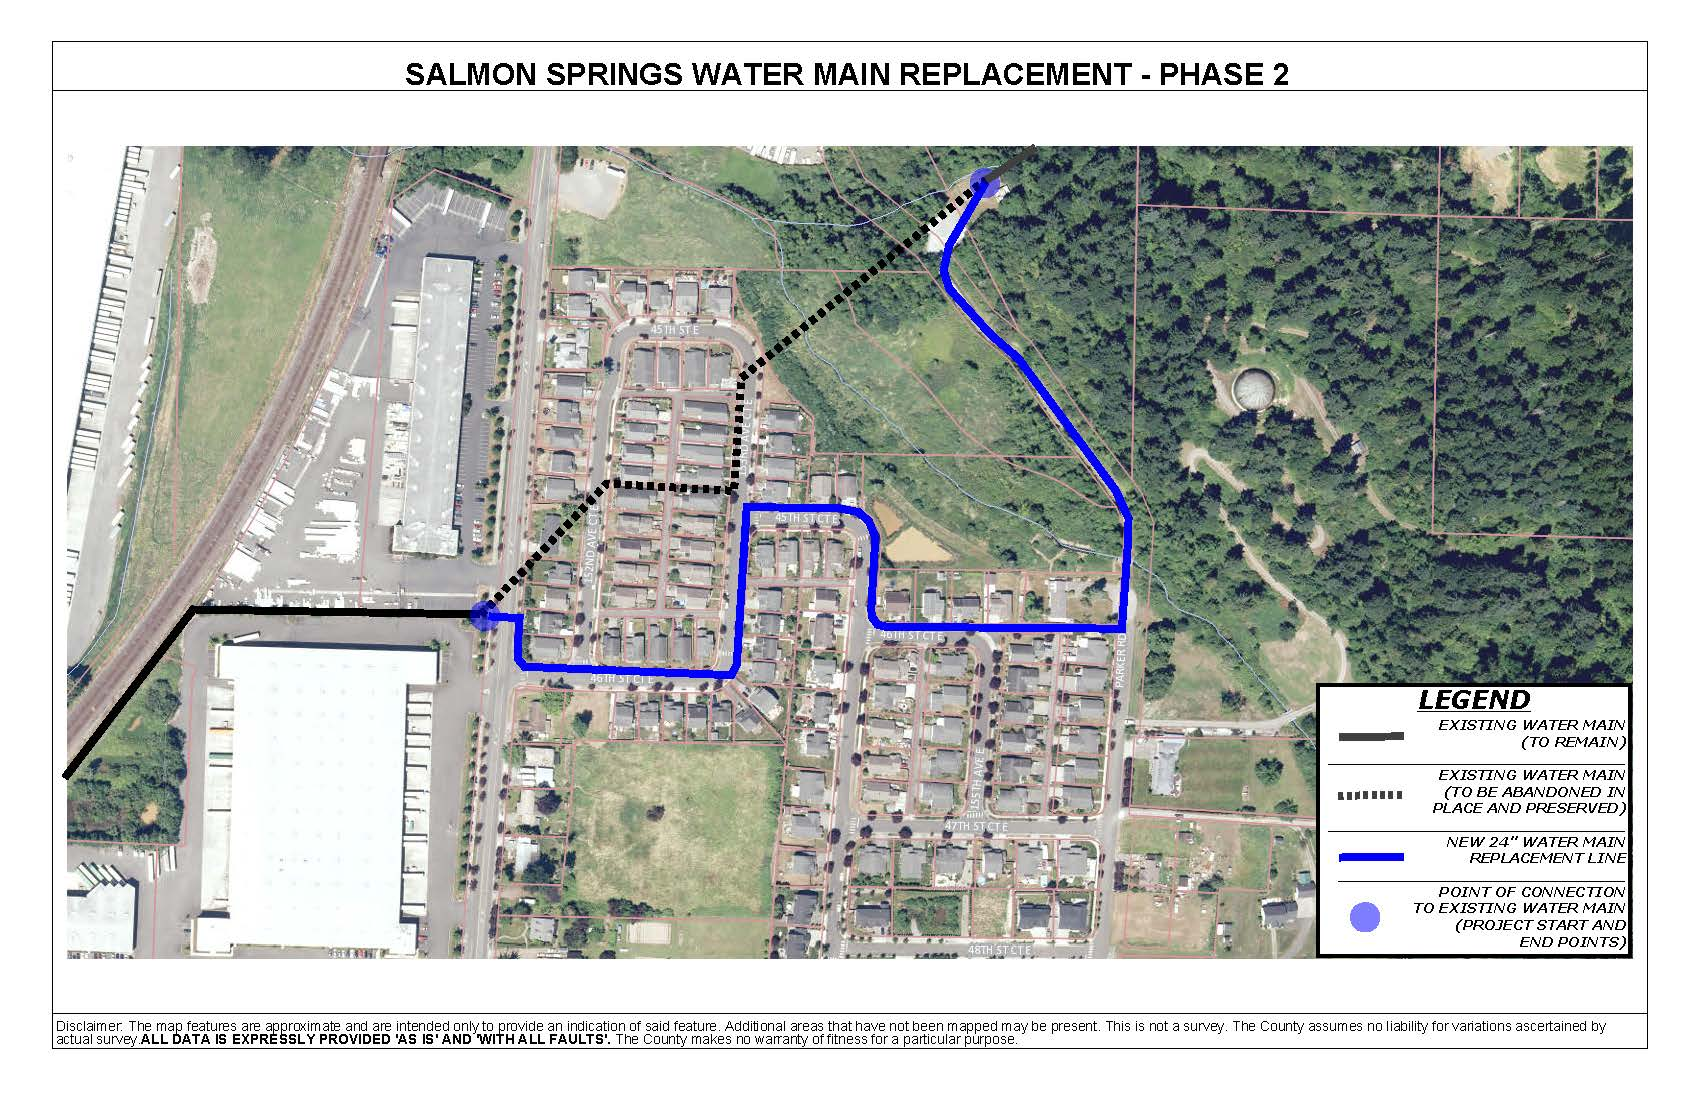 Salmon Springs Phase 2 - Project Vicinity Map